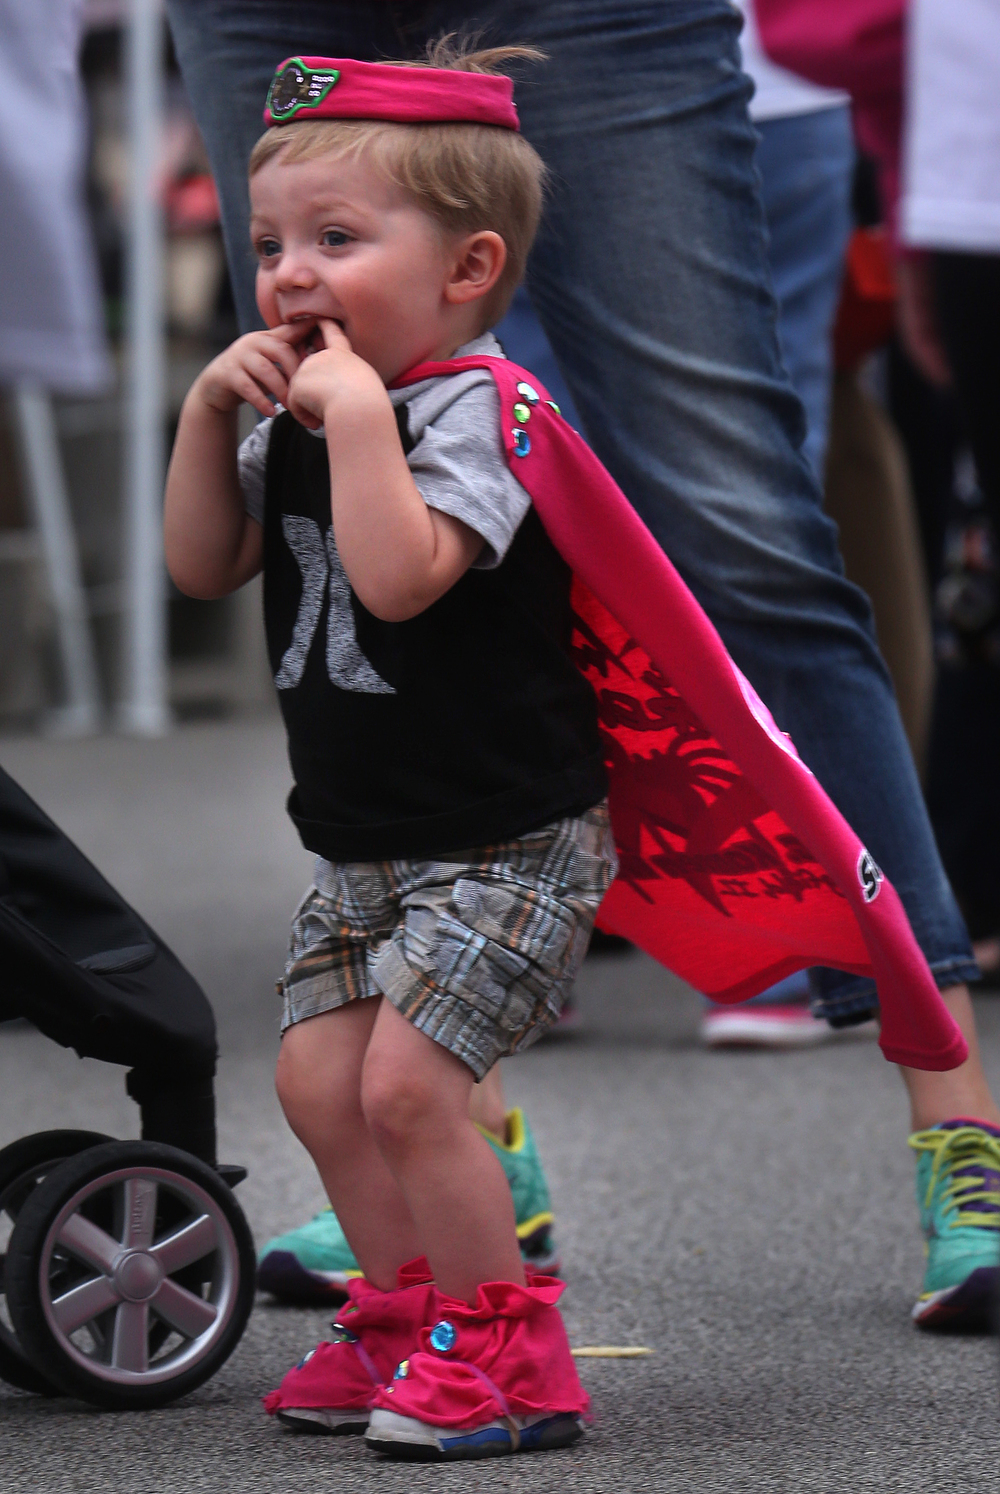 Logan Golembeck, 2, was a miniature super hero complete with cape and hat Friday night. David Spencer/The State Journal-Register